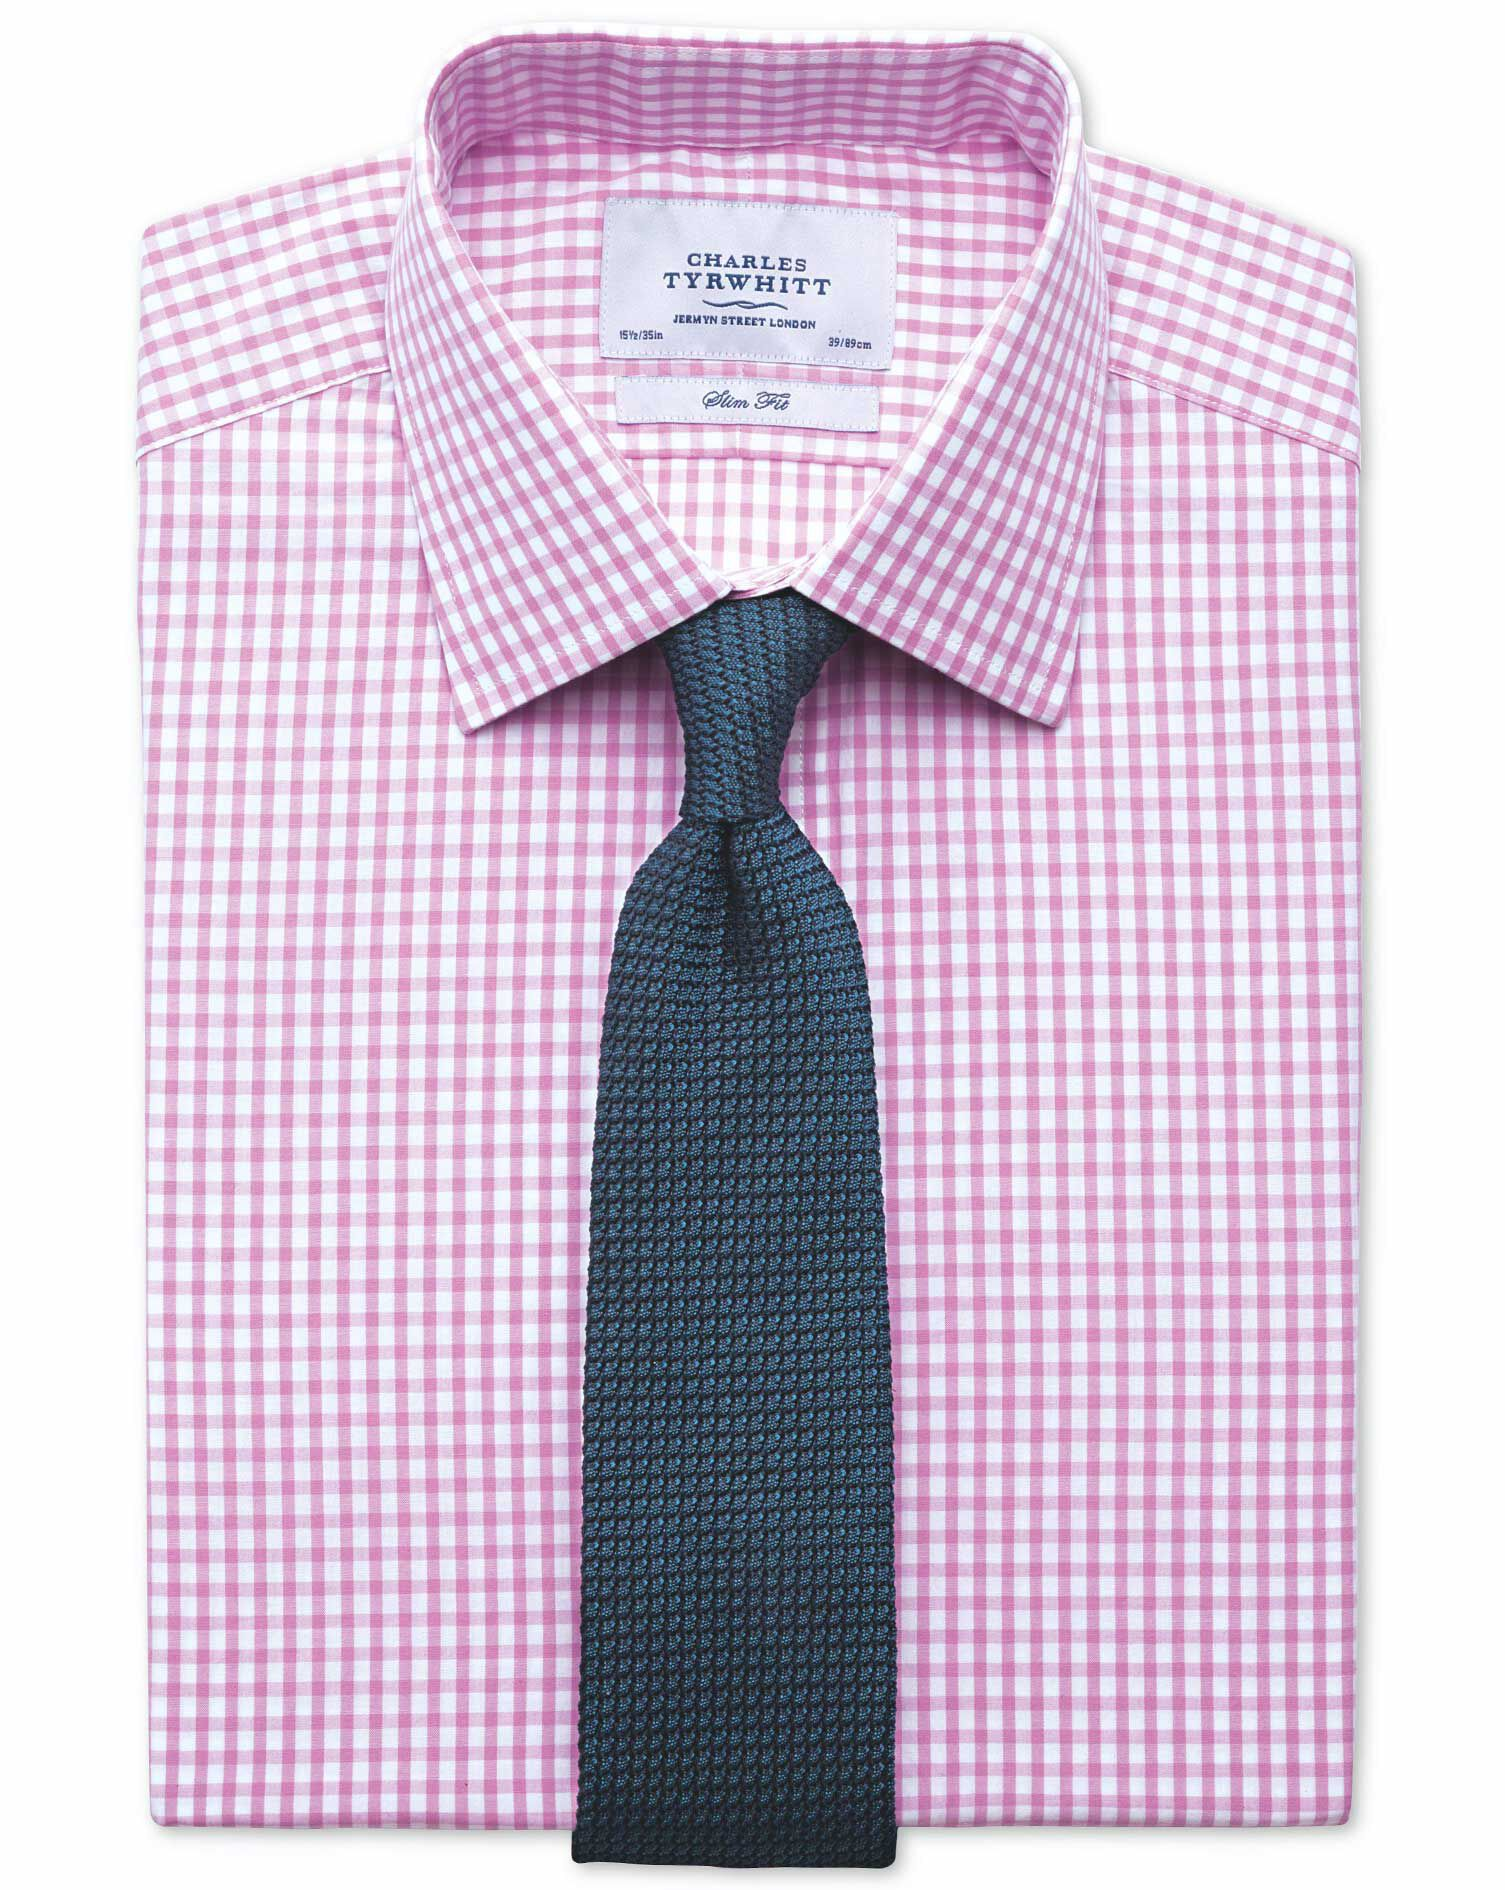 Slim Fit Gingham Pink Cotton Formal Shirt Double Cuff Size 17/37 by Charles Tyrwhitt